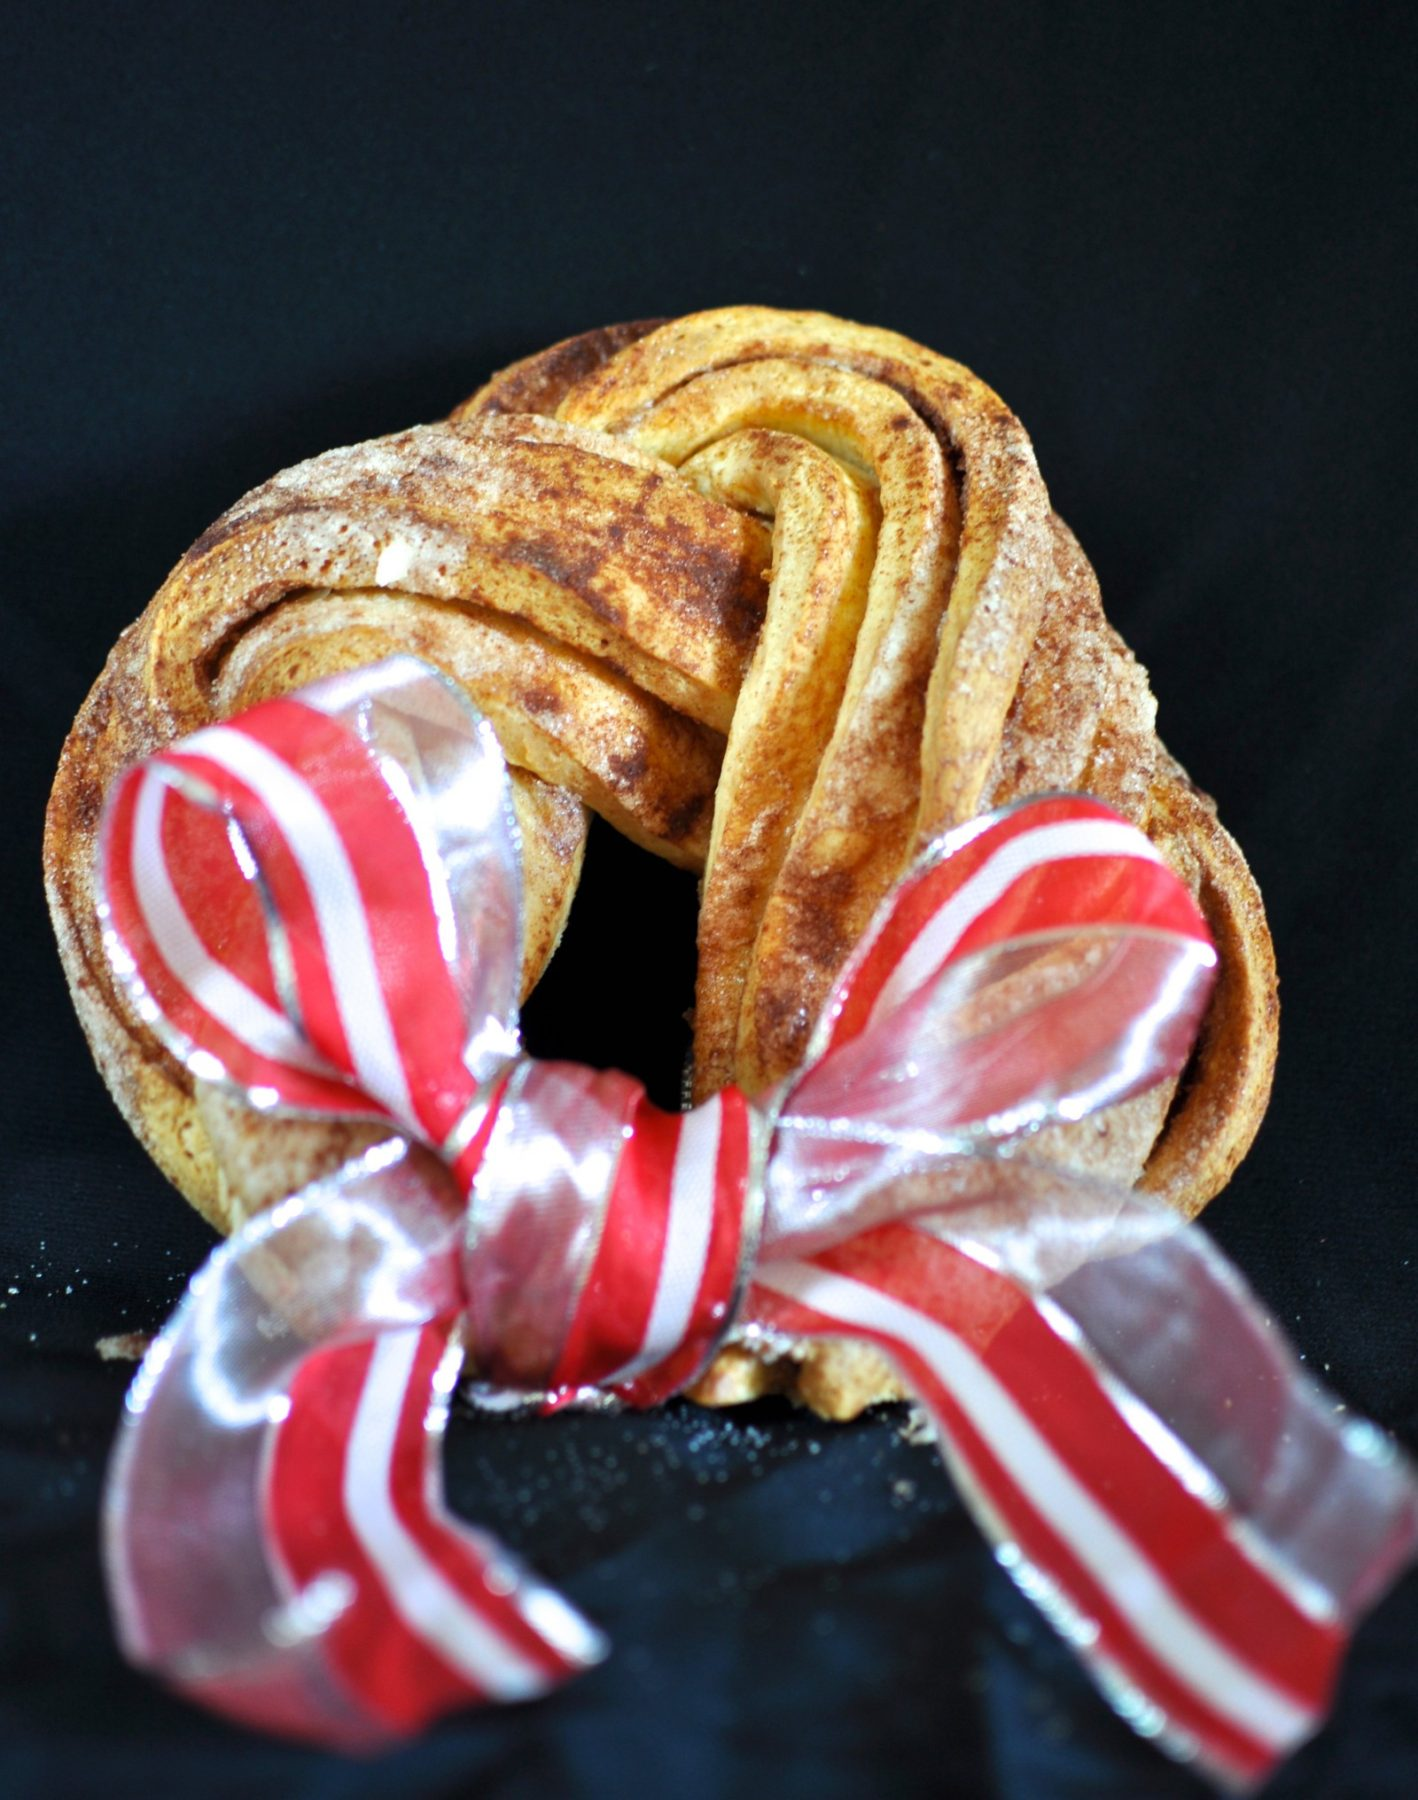 Cinnamon loaf wreath